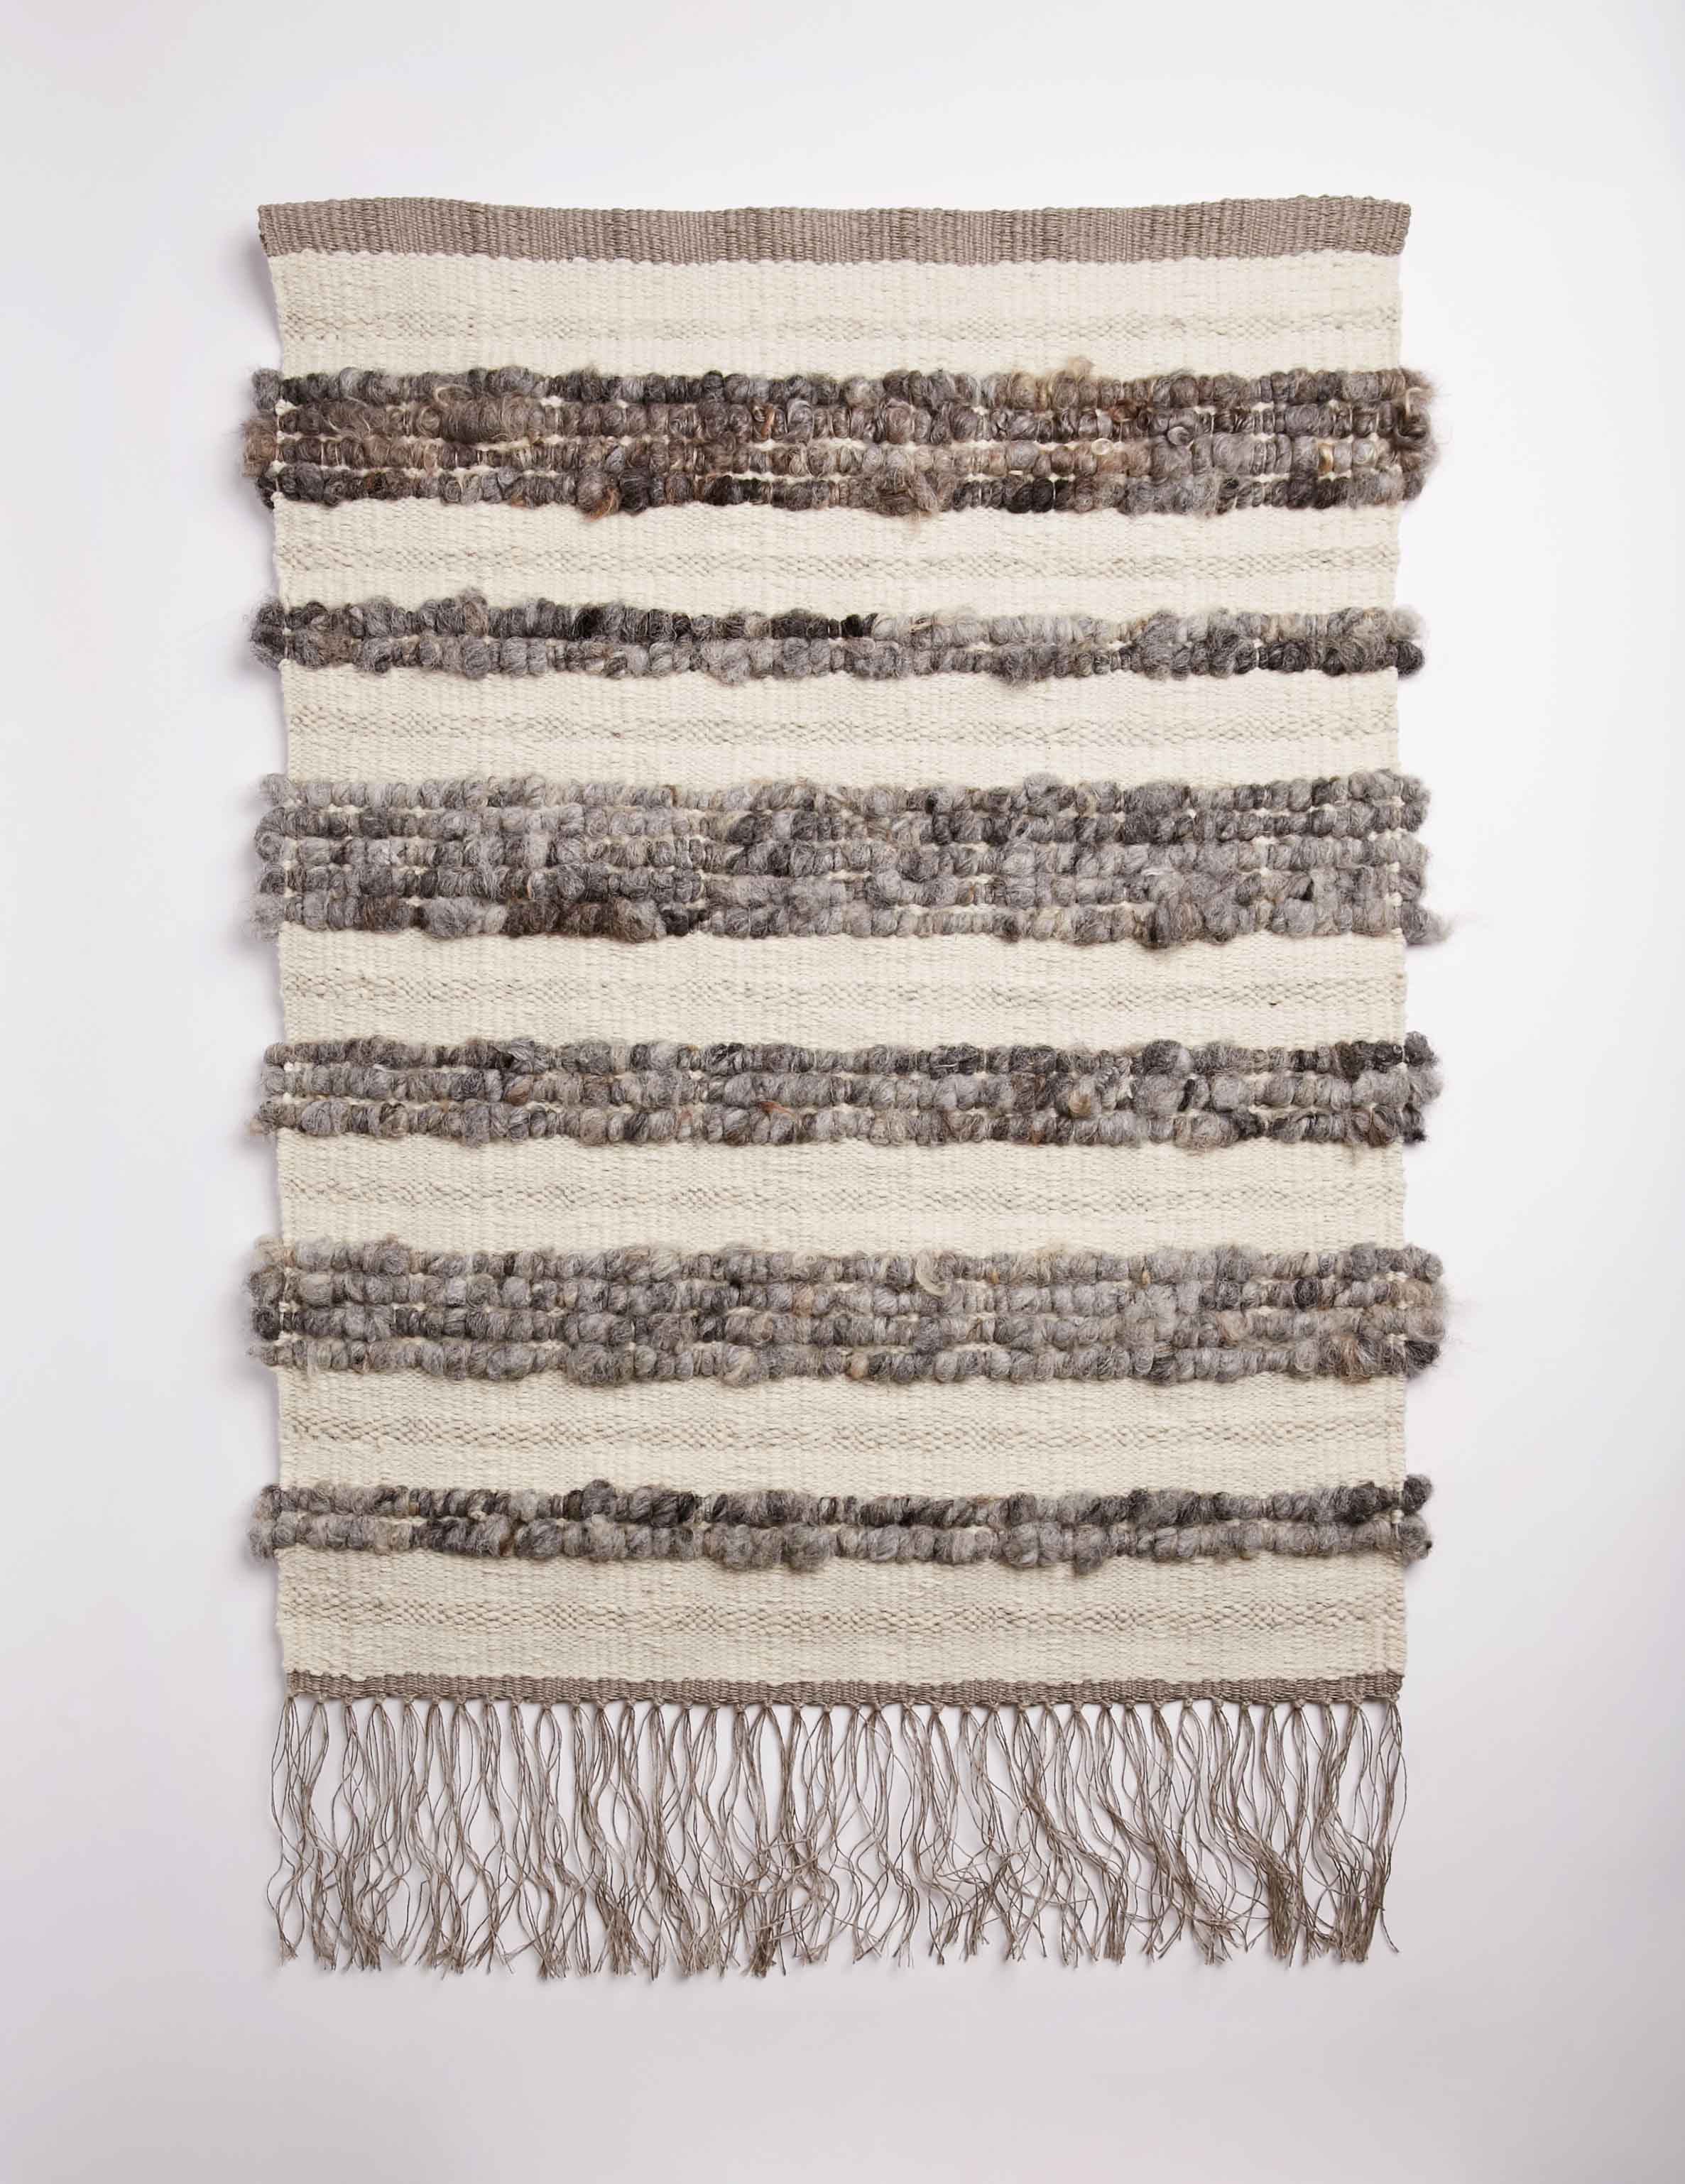 Raw Fleece Wall Hanging - Dry Stone II